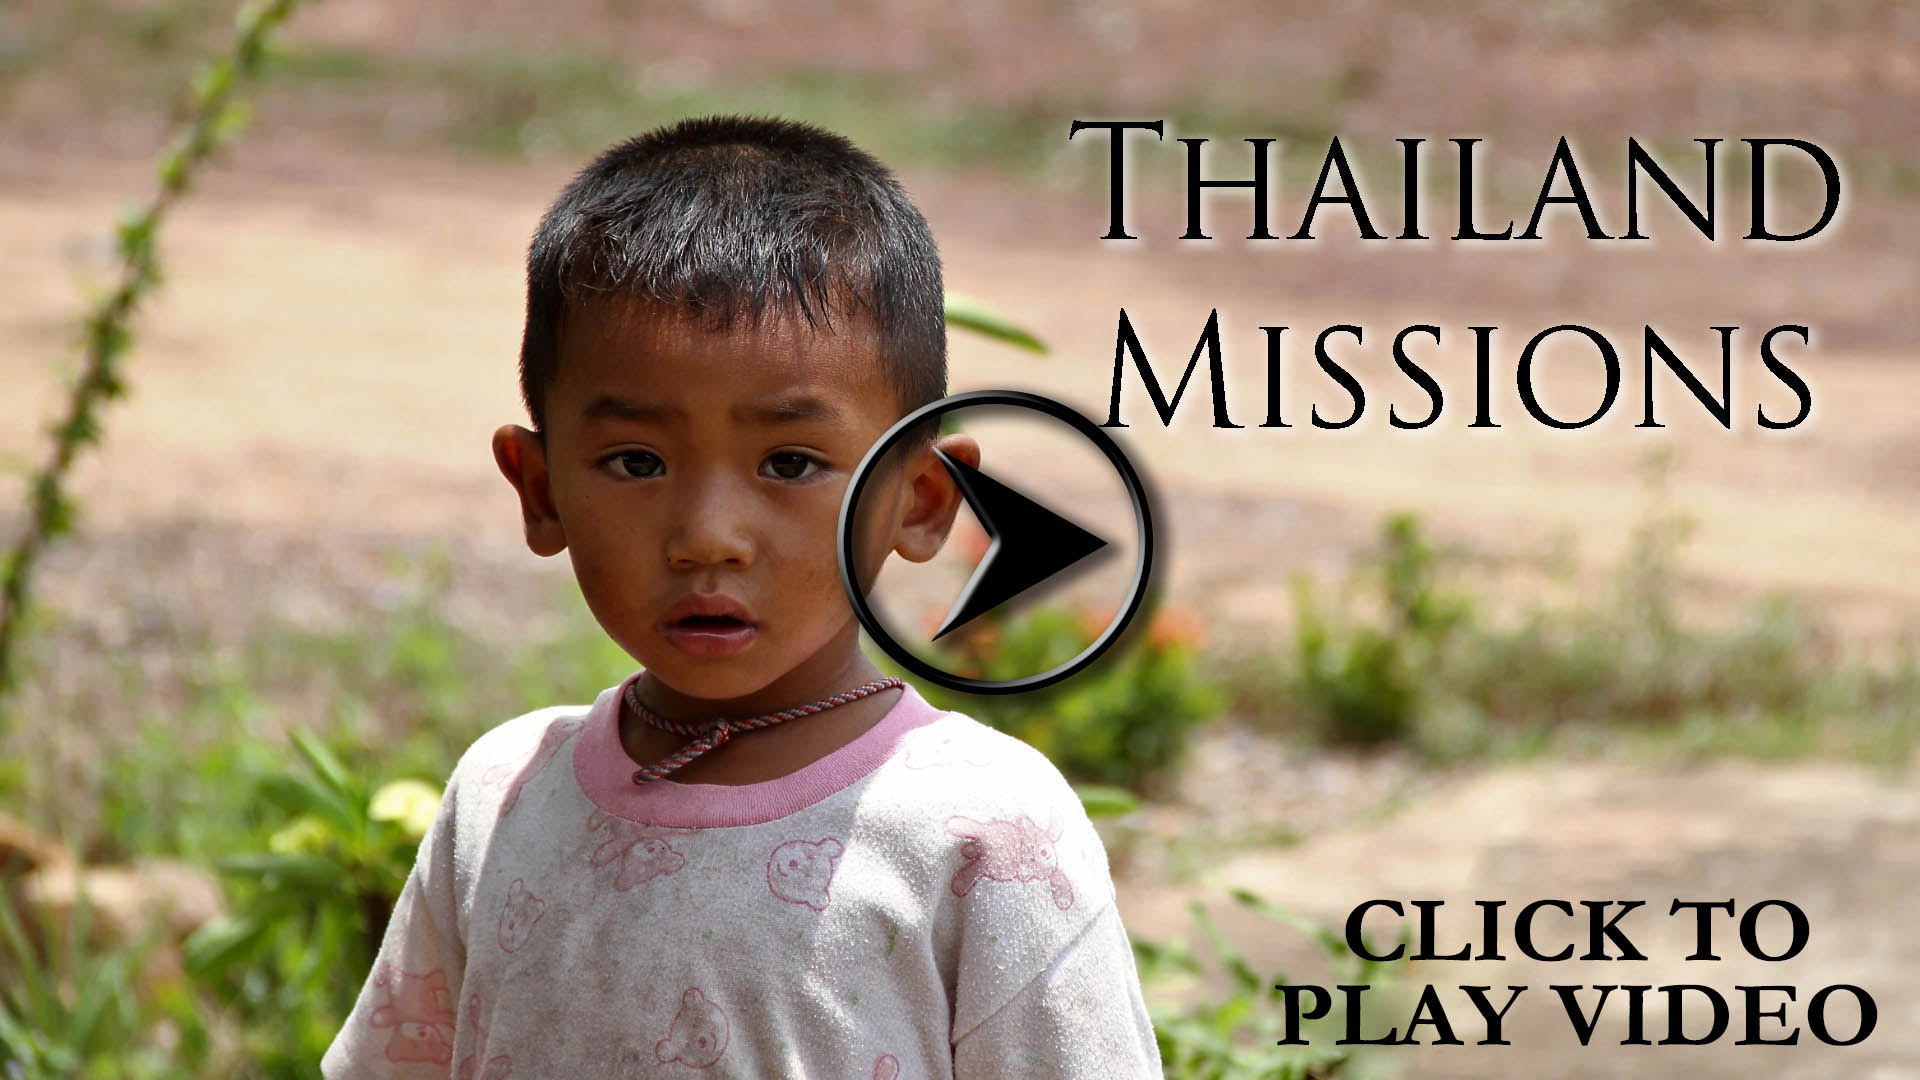 Thailand Missions Video 2015